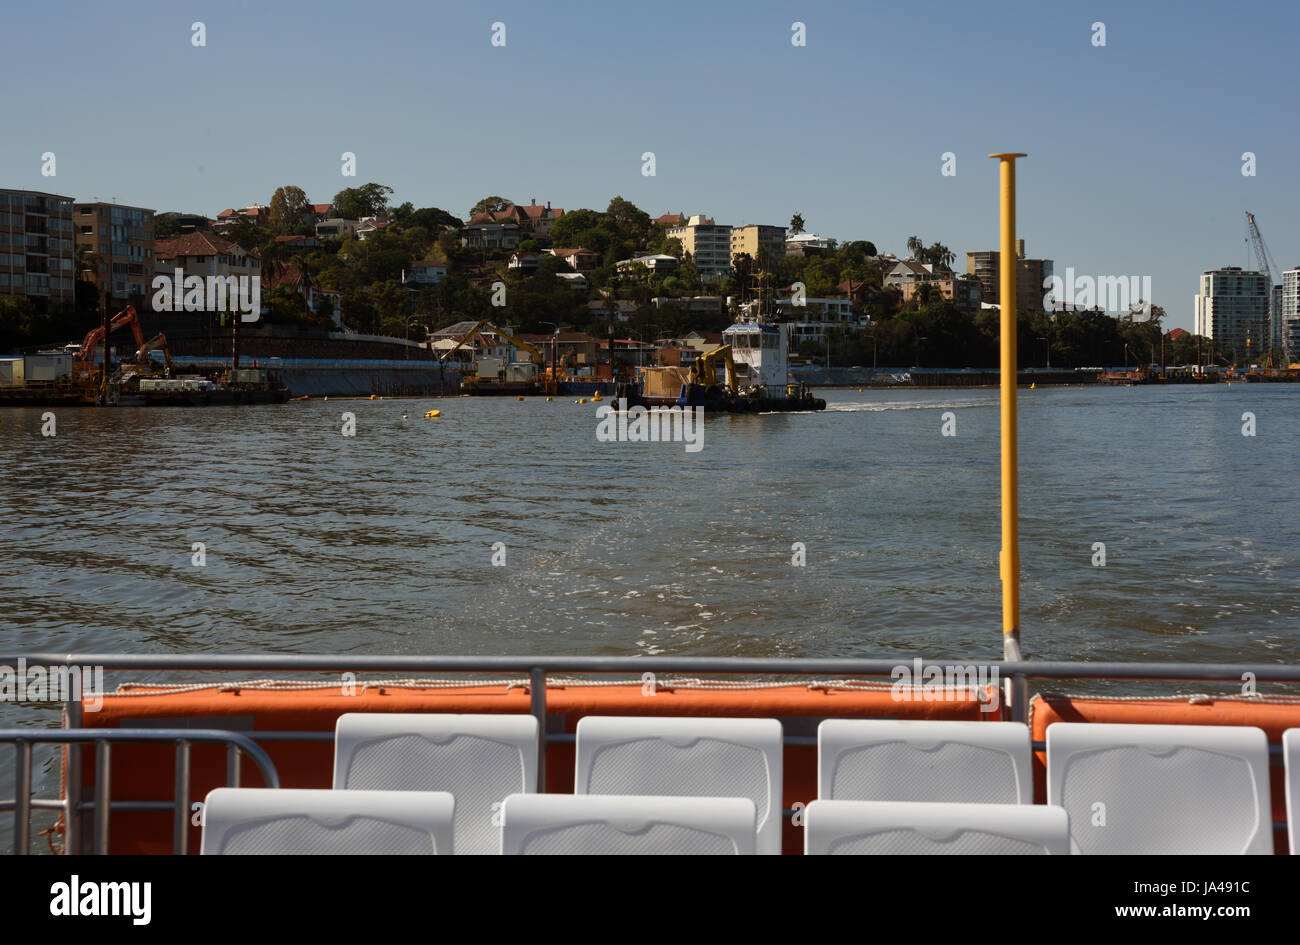 Brisbane, Australia: View of the Hamilton area from the rear deck of a CityCat passenger ferry - Stock Image